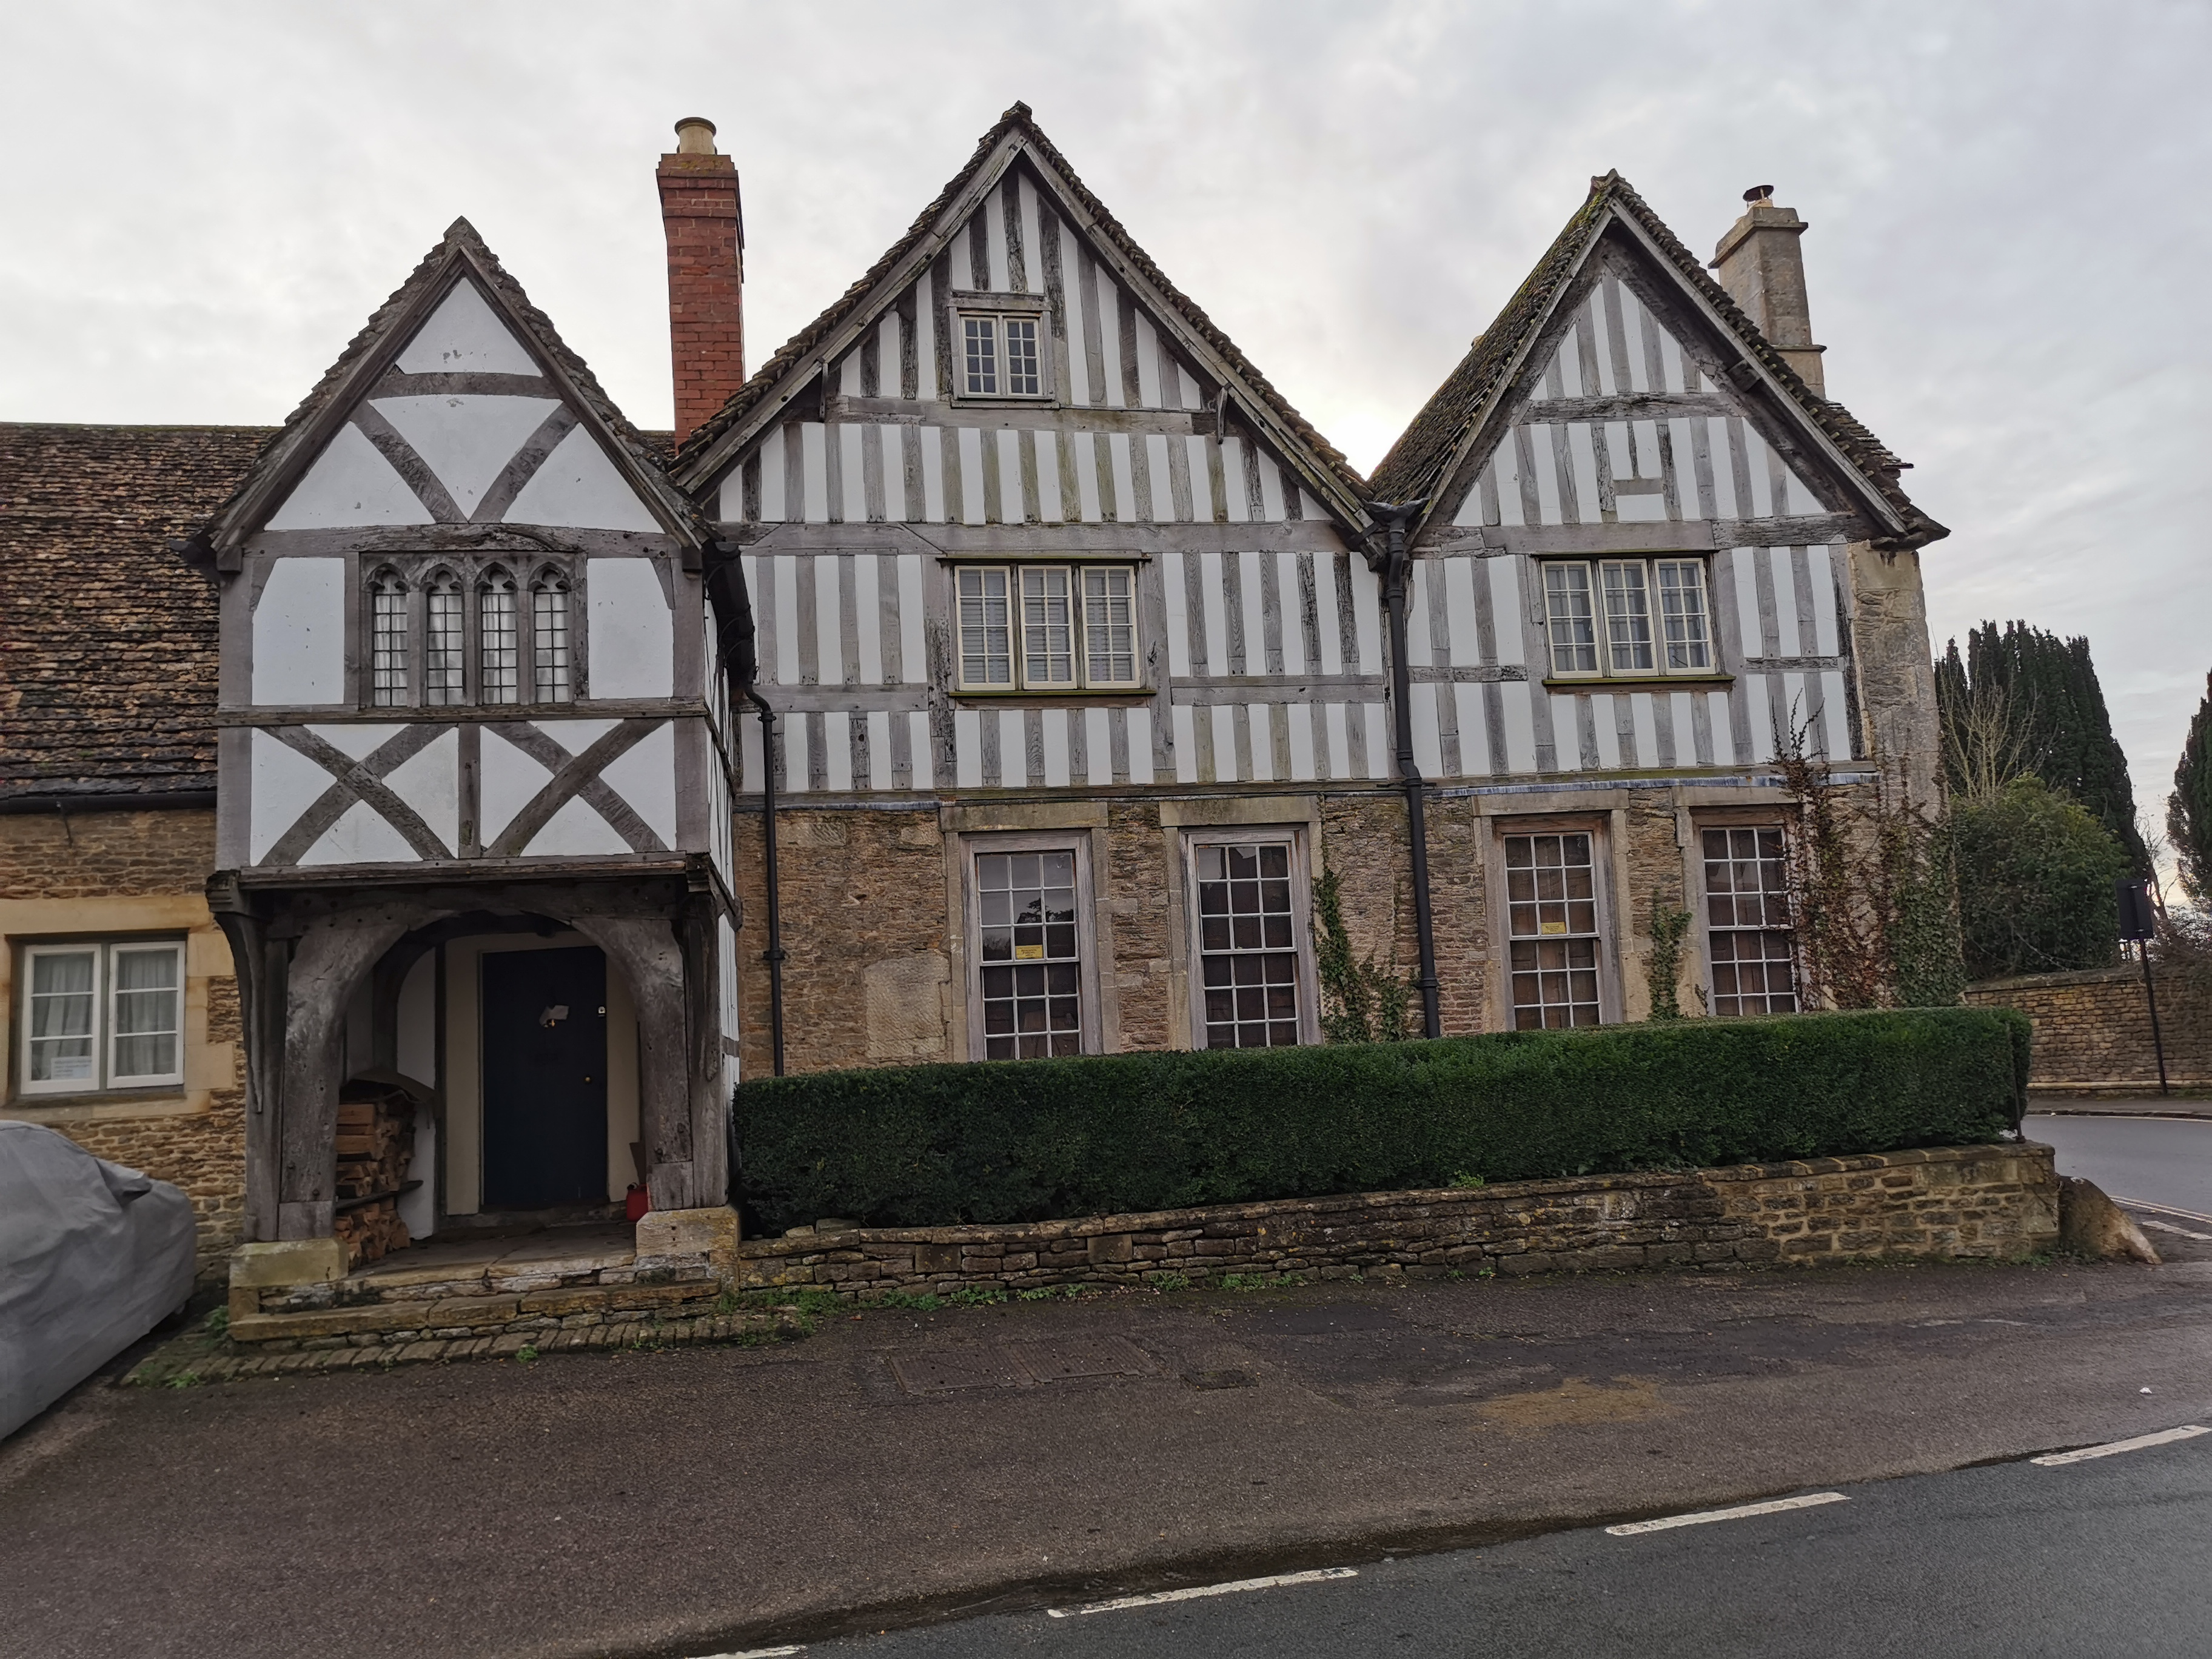 House in Lacock village